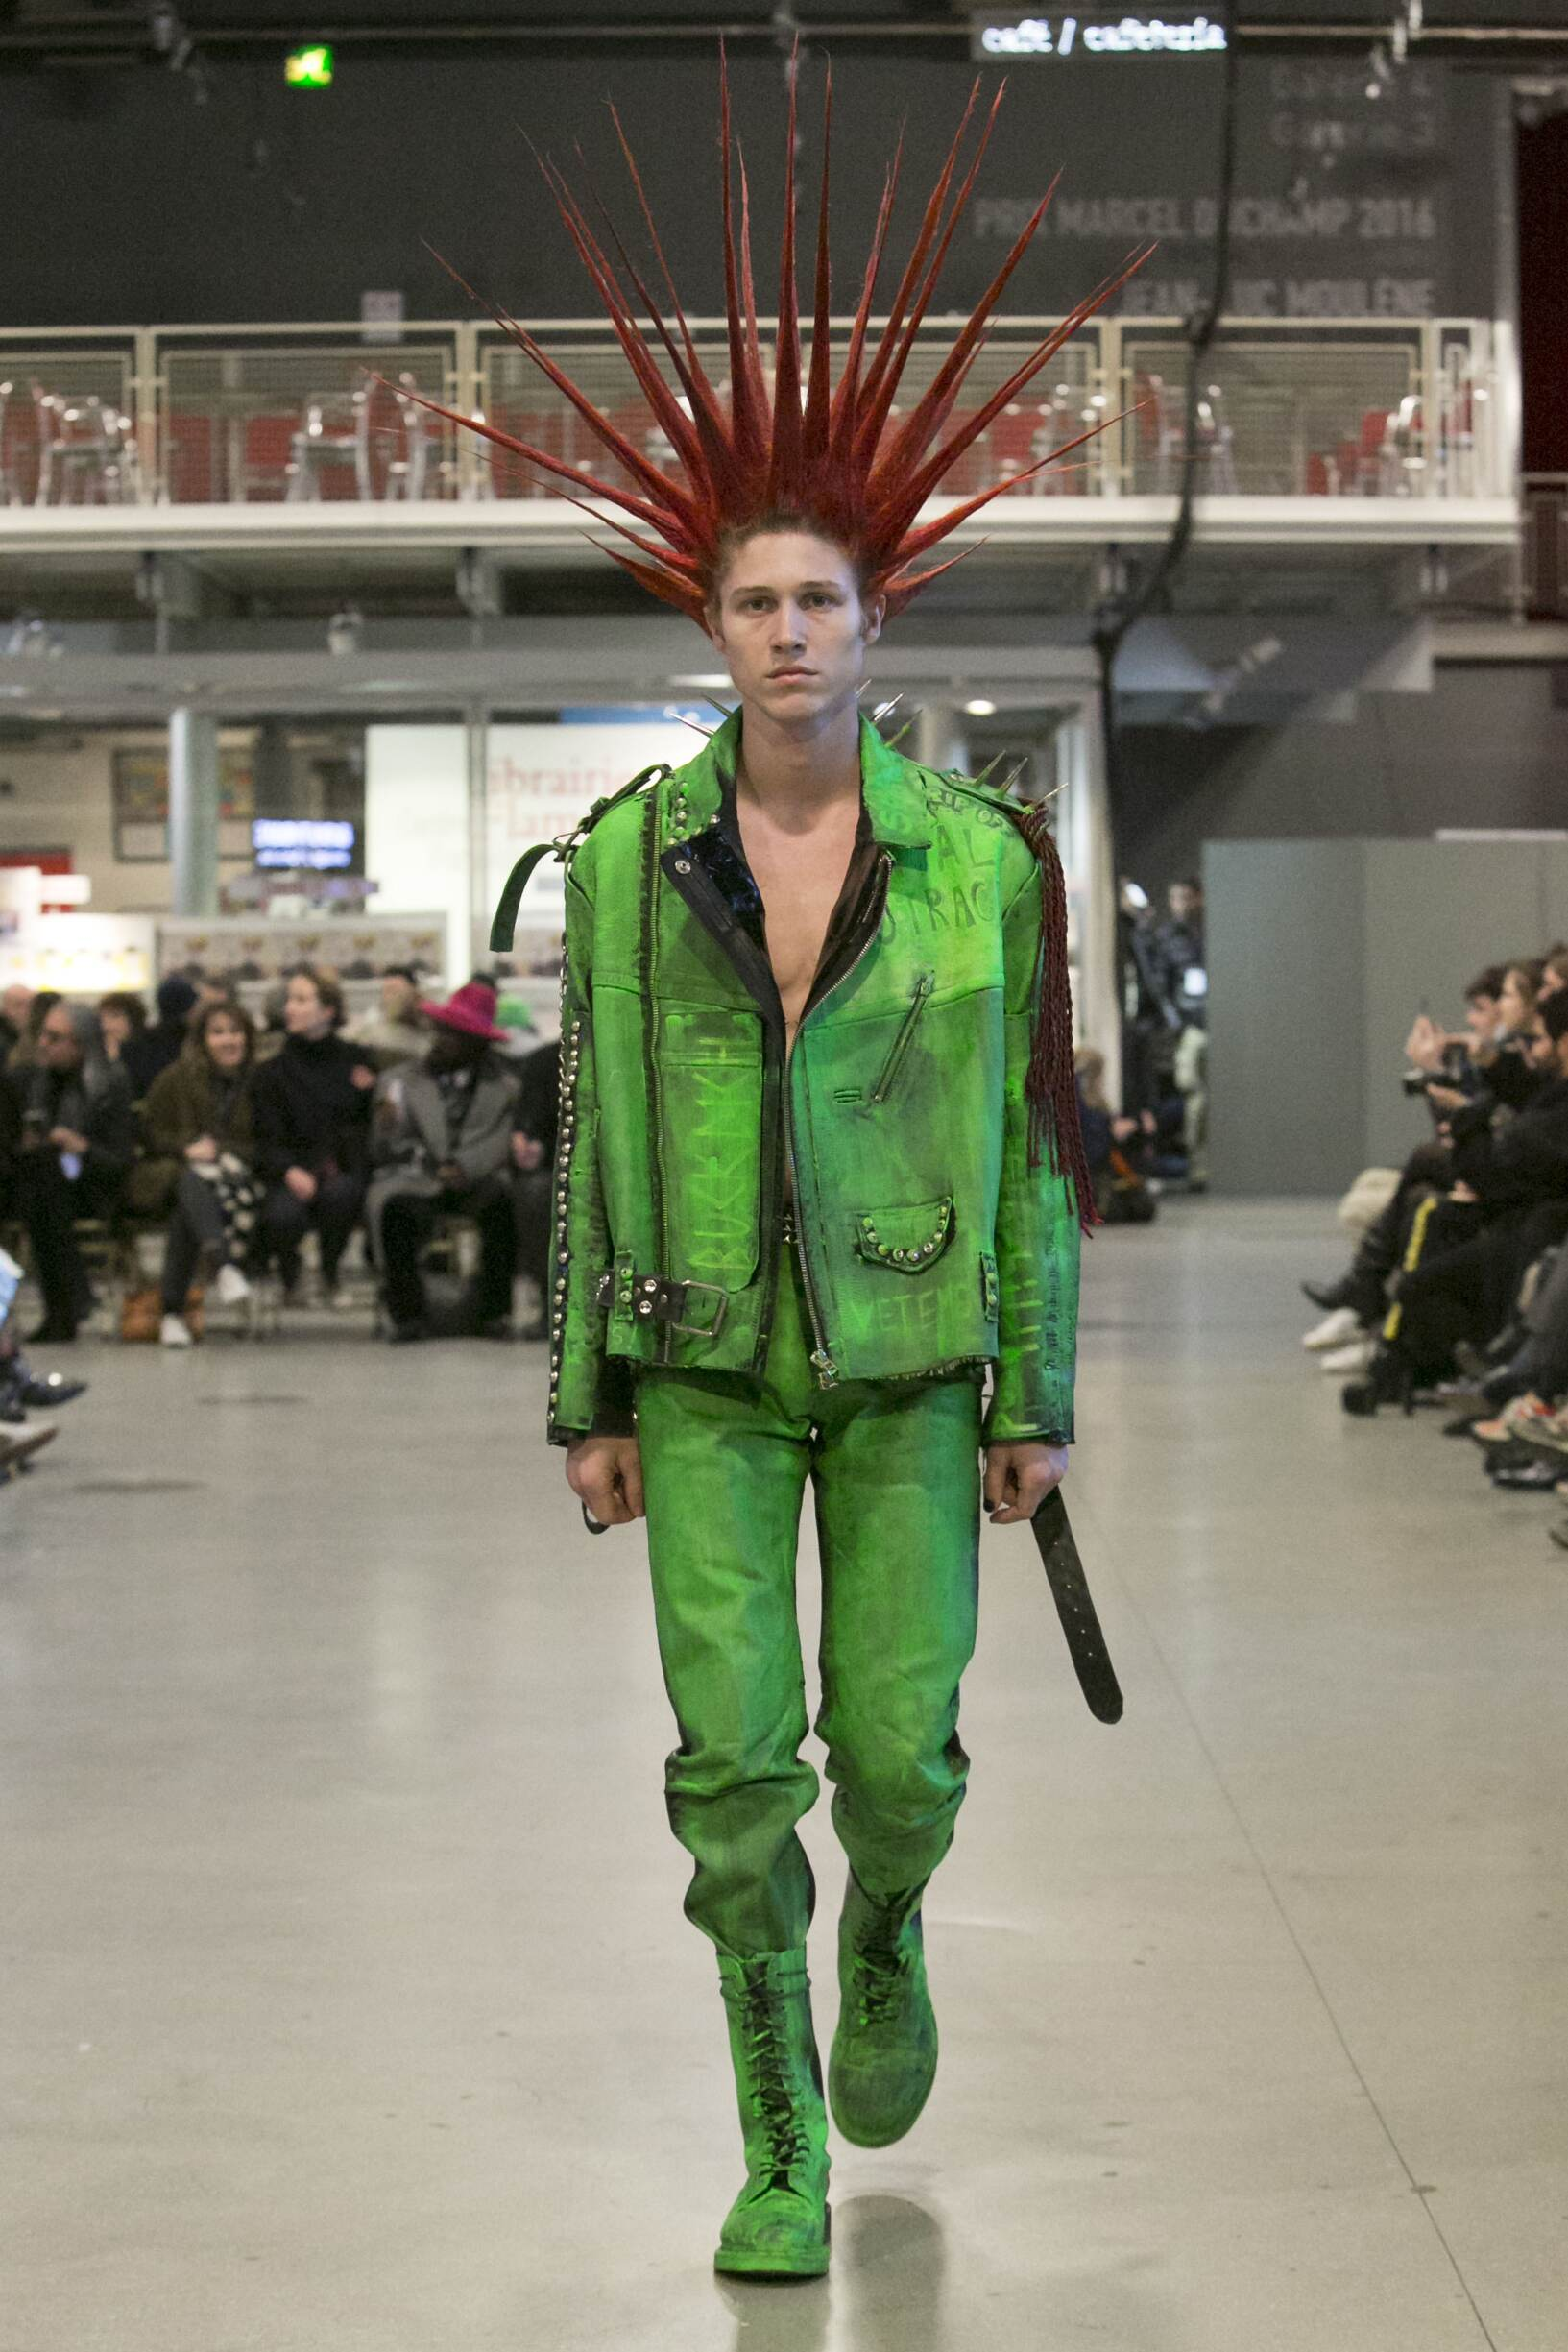 Fashion Man Model Vetements Catwalk 17-18